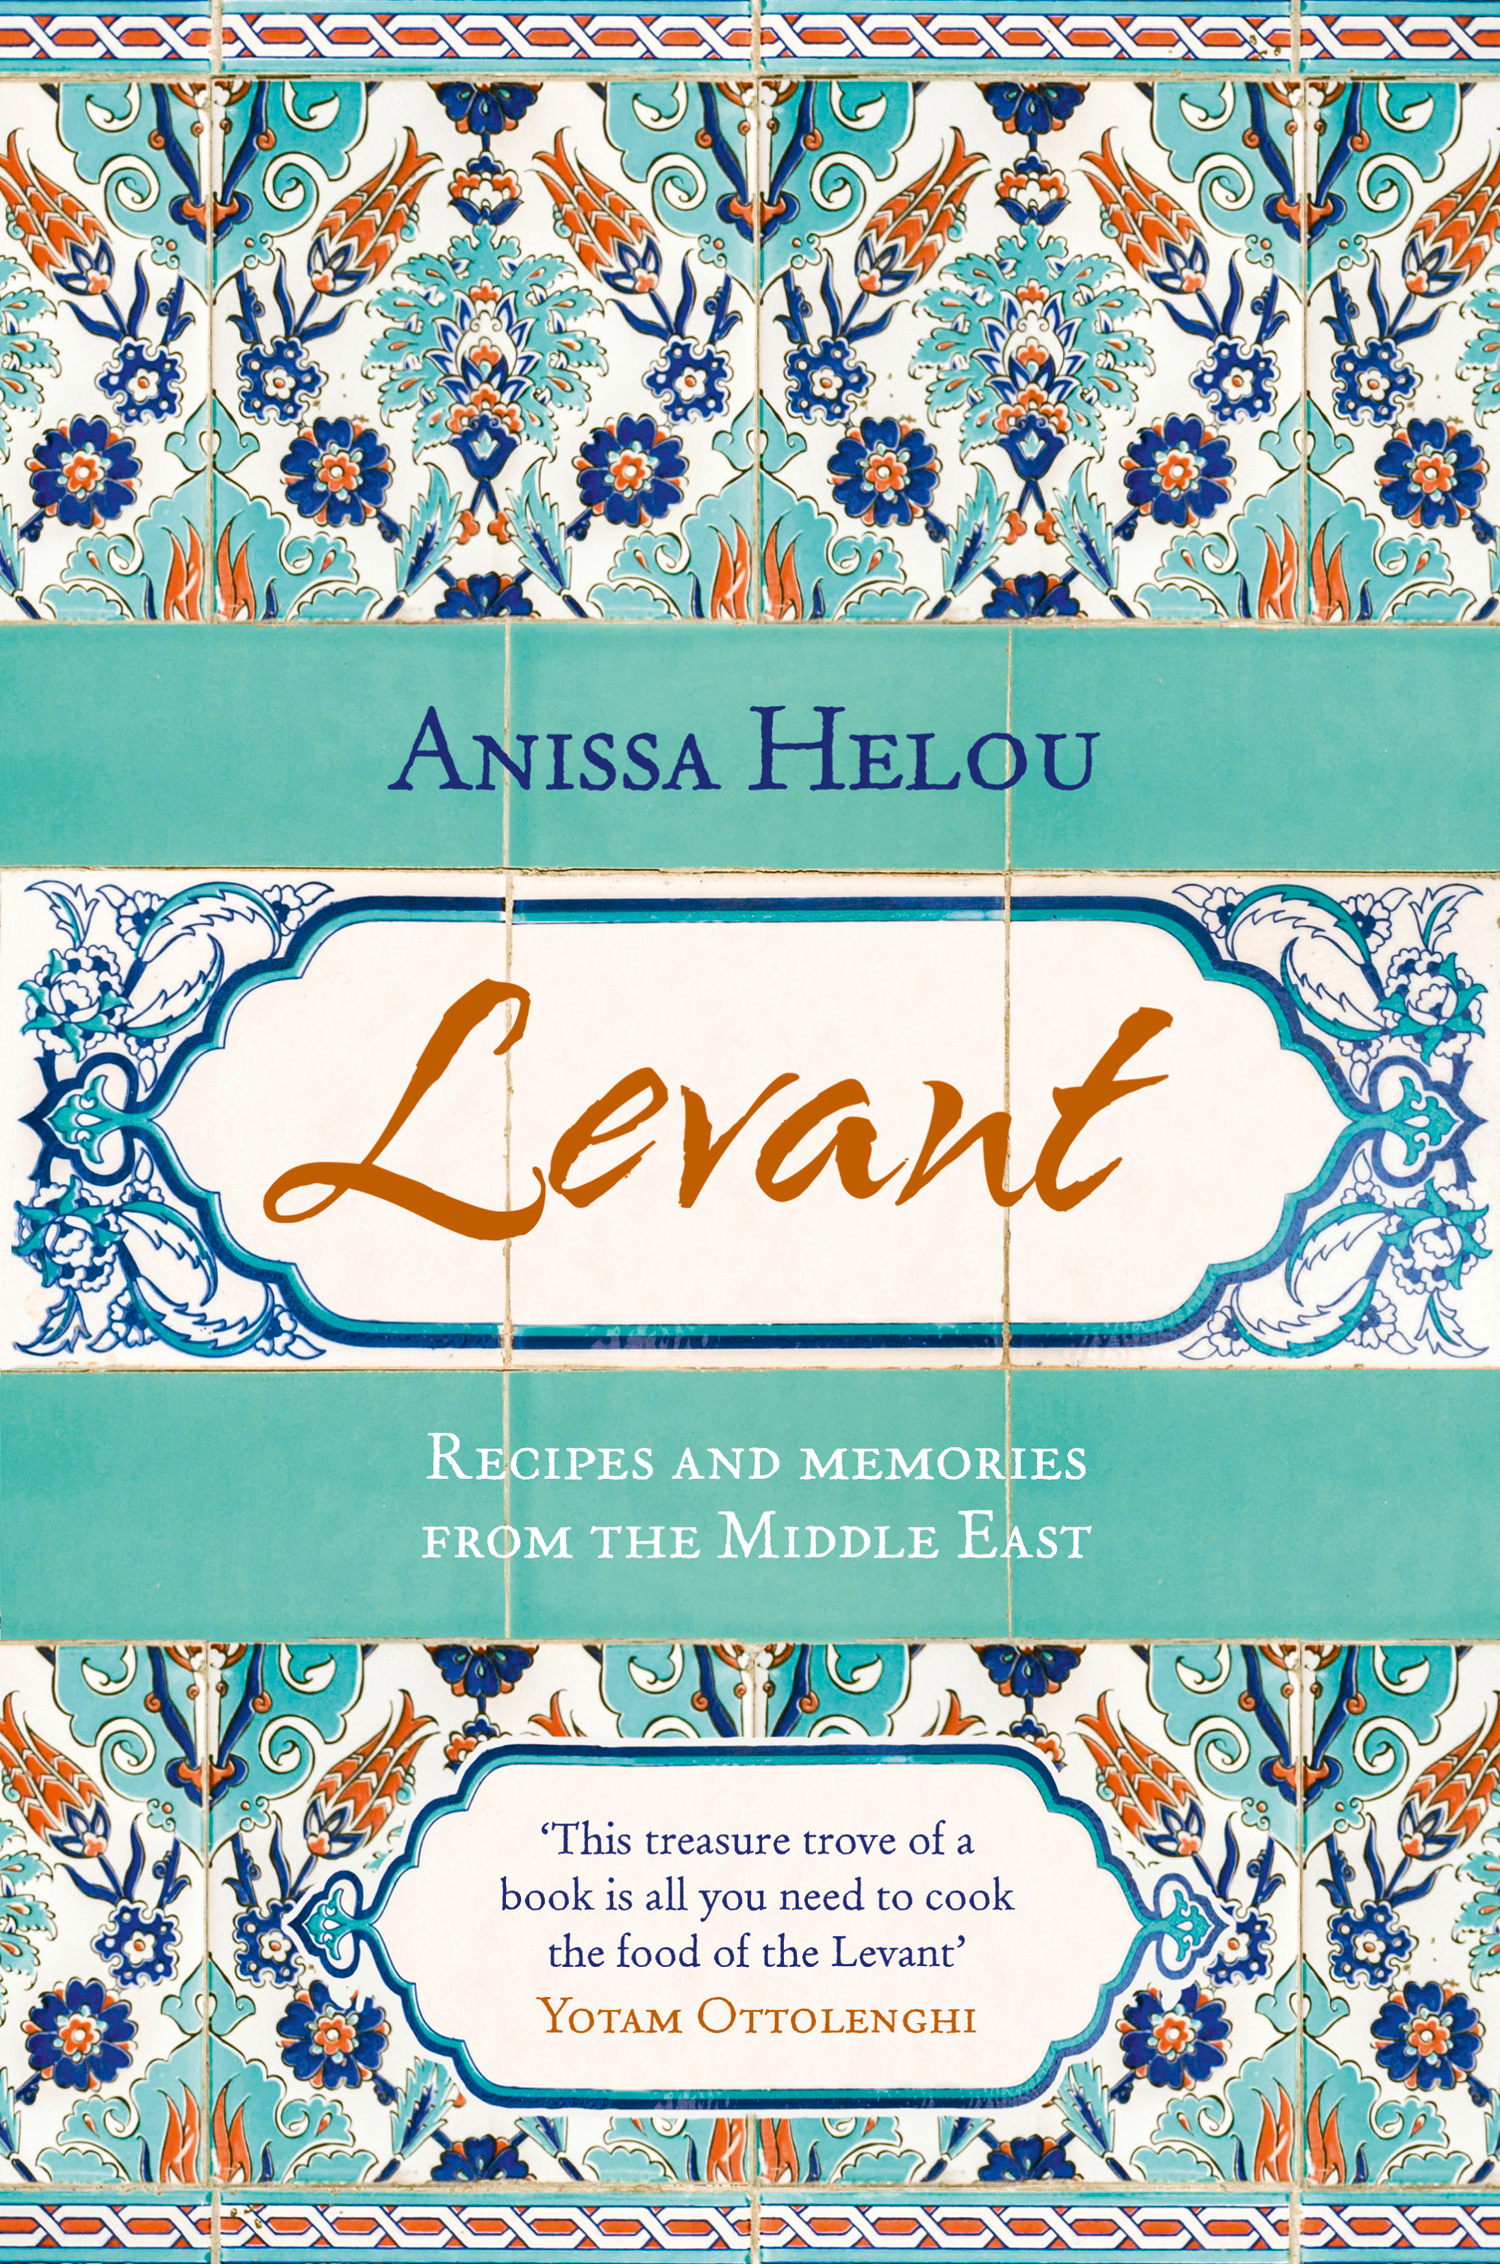 Levant: Recipes and memories from the Middle East